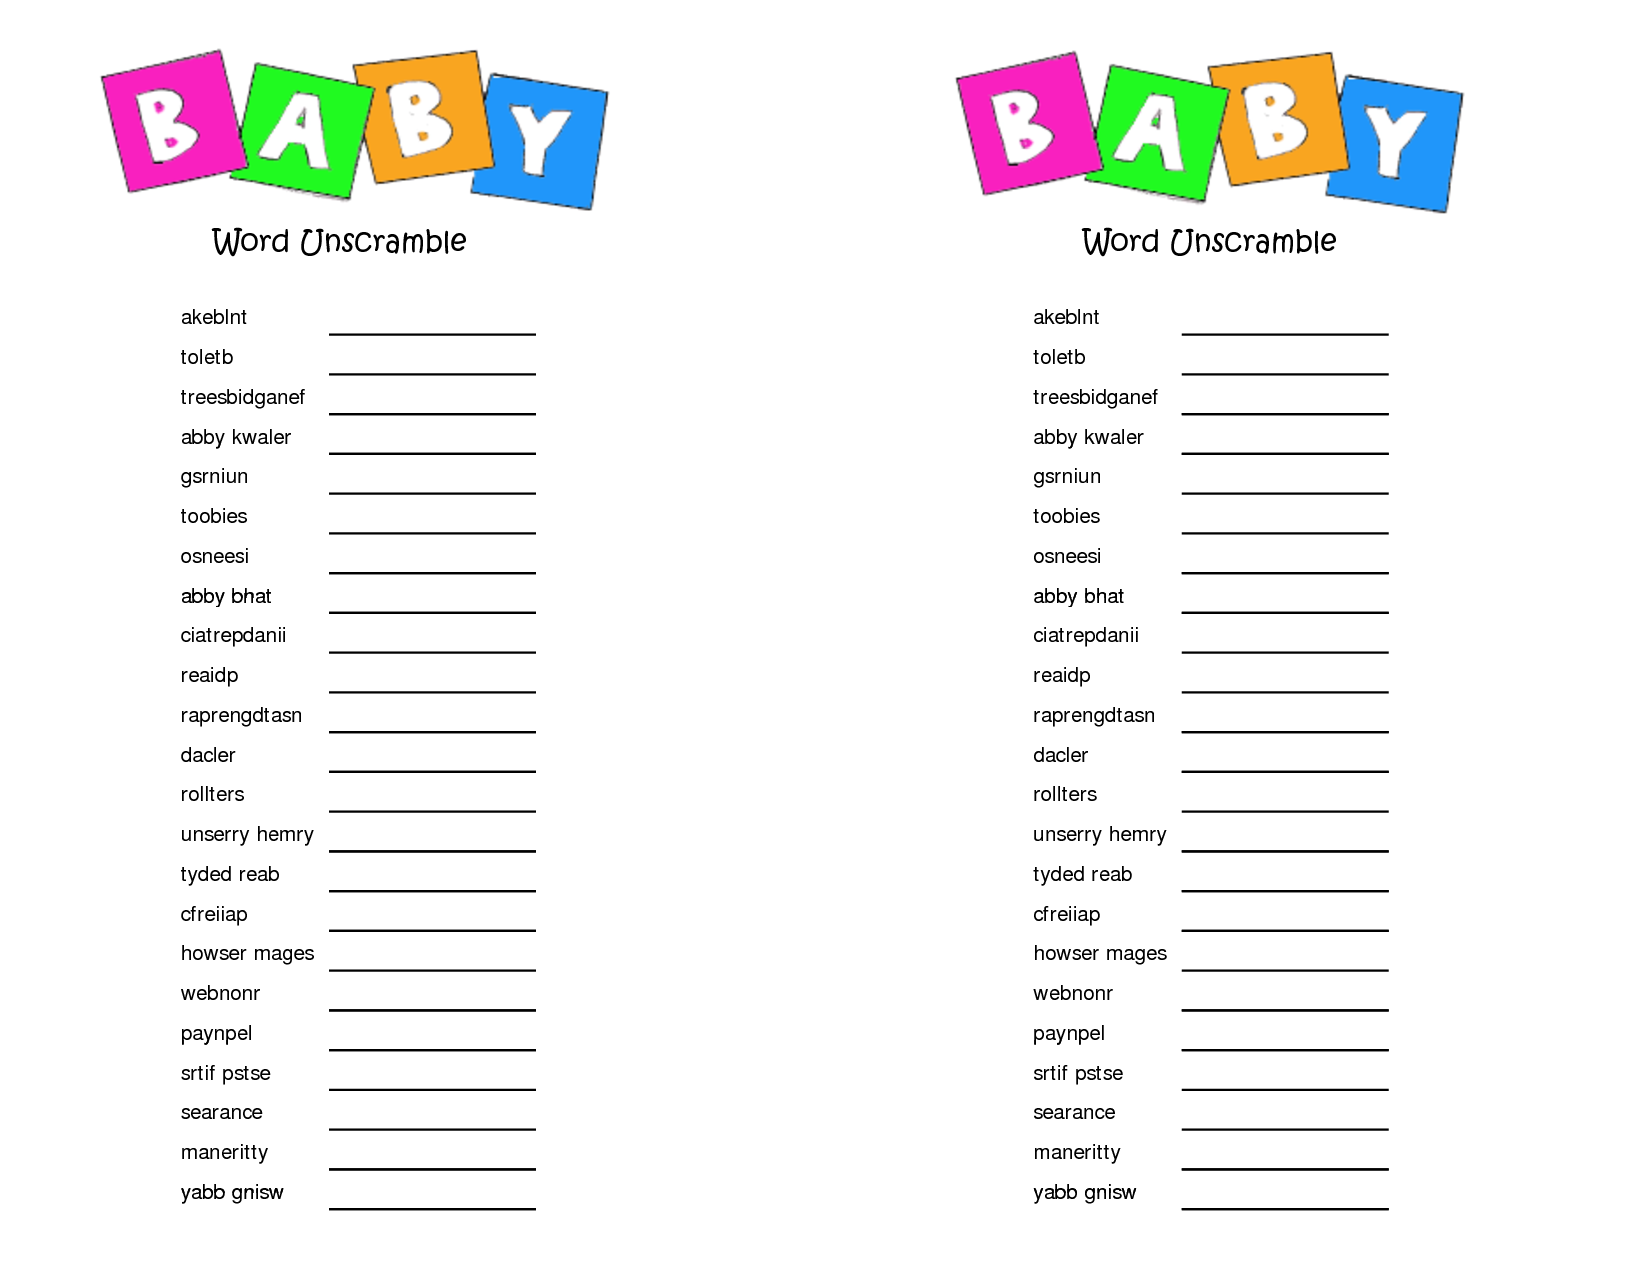 4 Images of Printable Unscramble Word Games